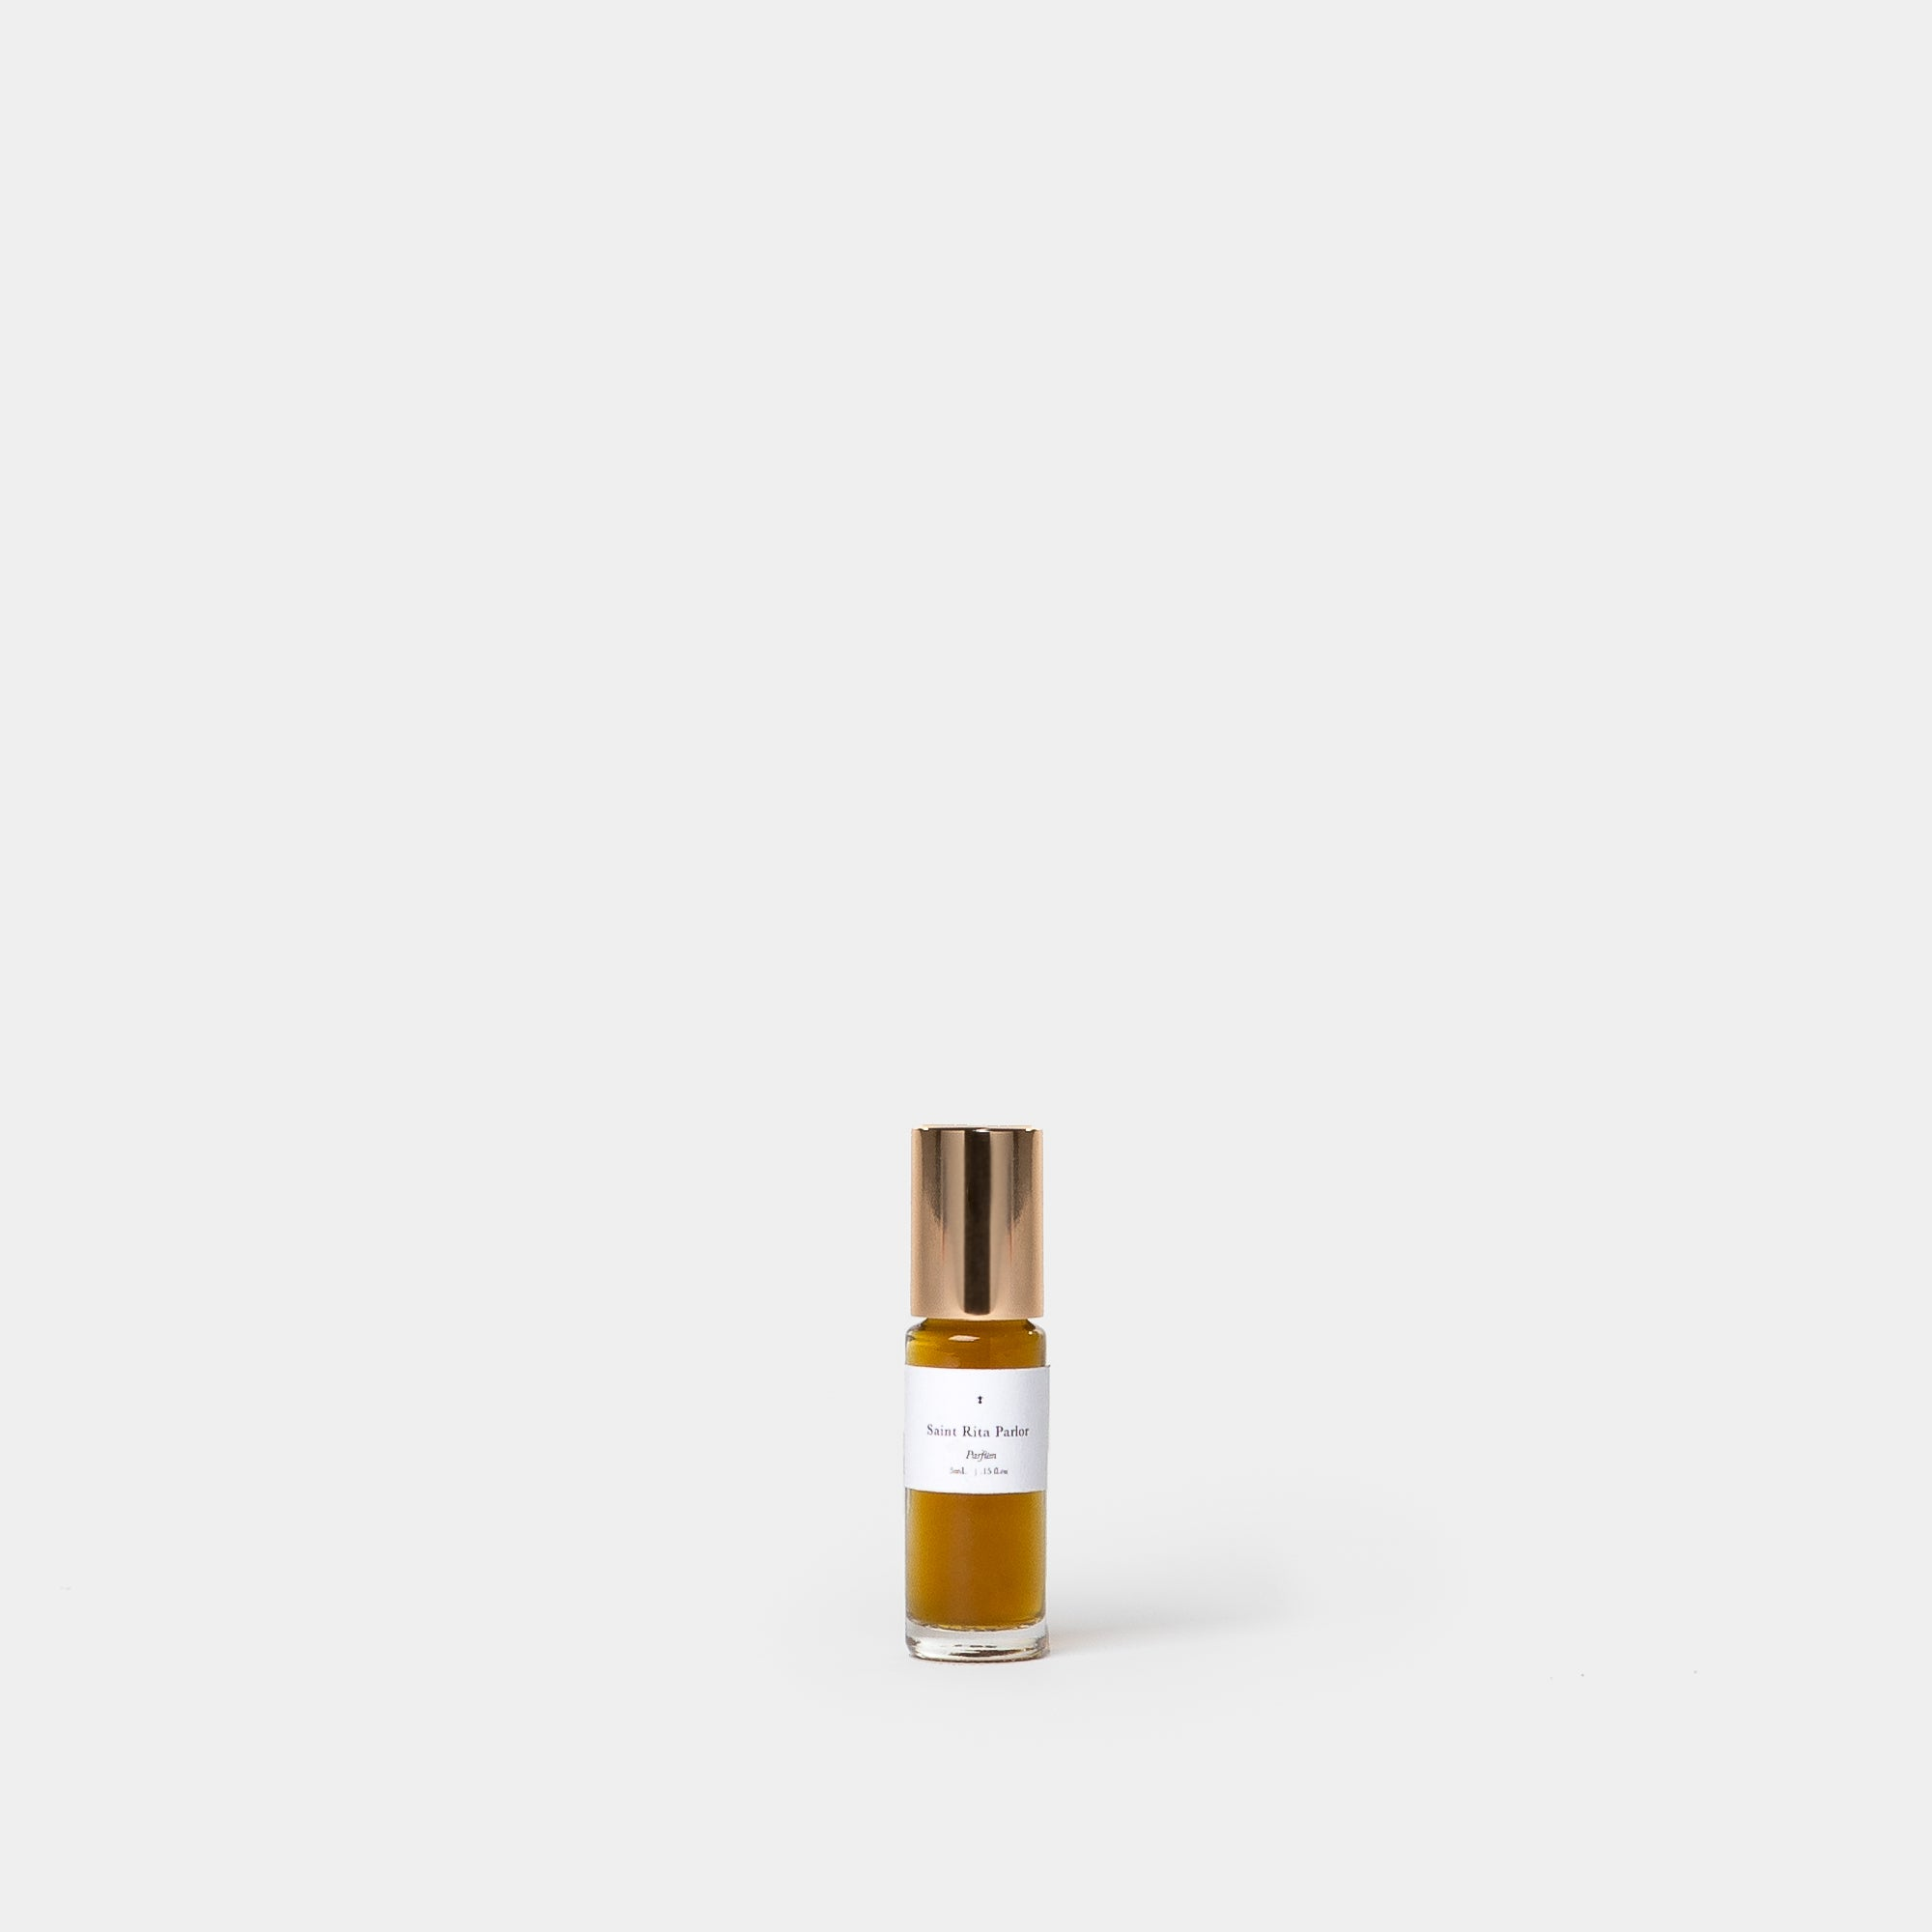 Signature Fragrance 5 mL - Apothecary – Shoppe Amber Interiors